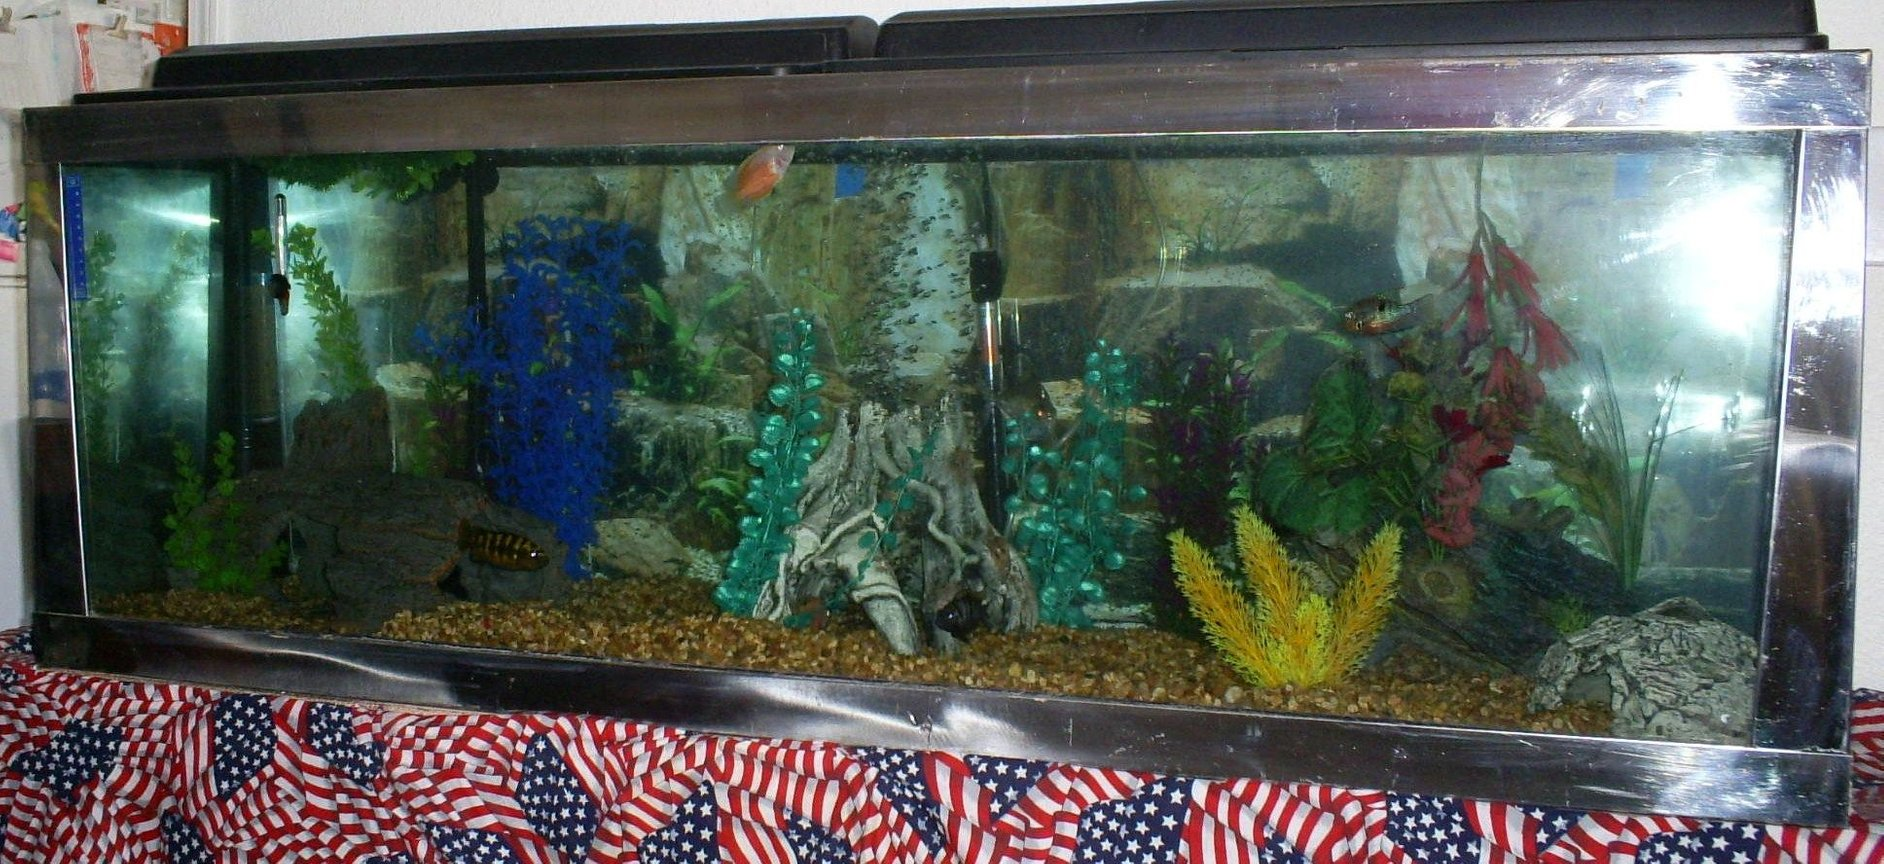 100 gallons freshwater fish tank (mostly fish and non-living decorations) - front of the tank